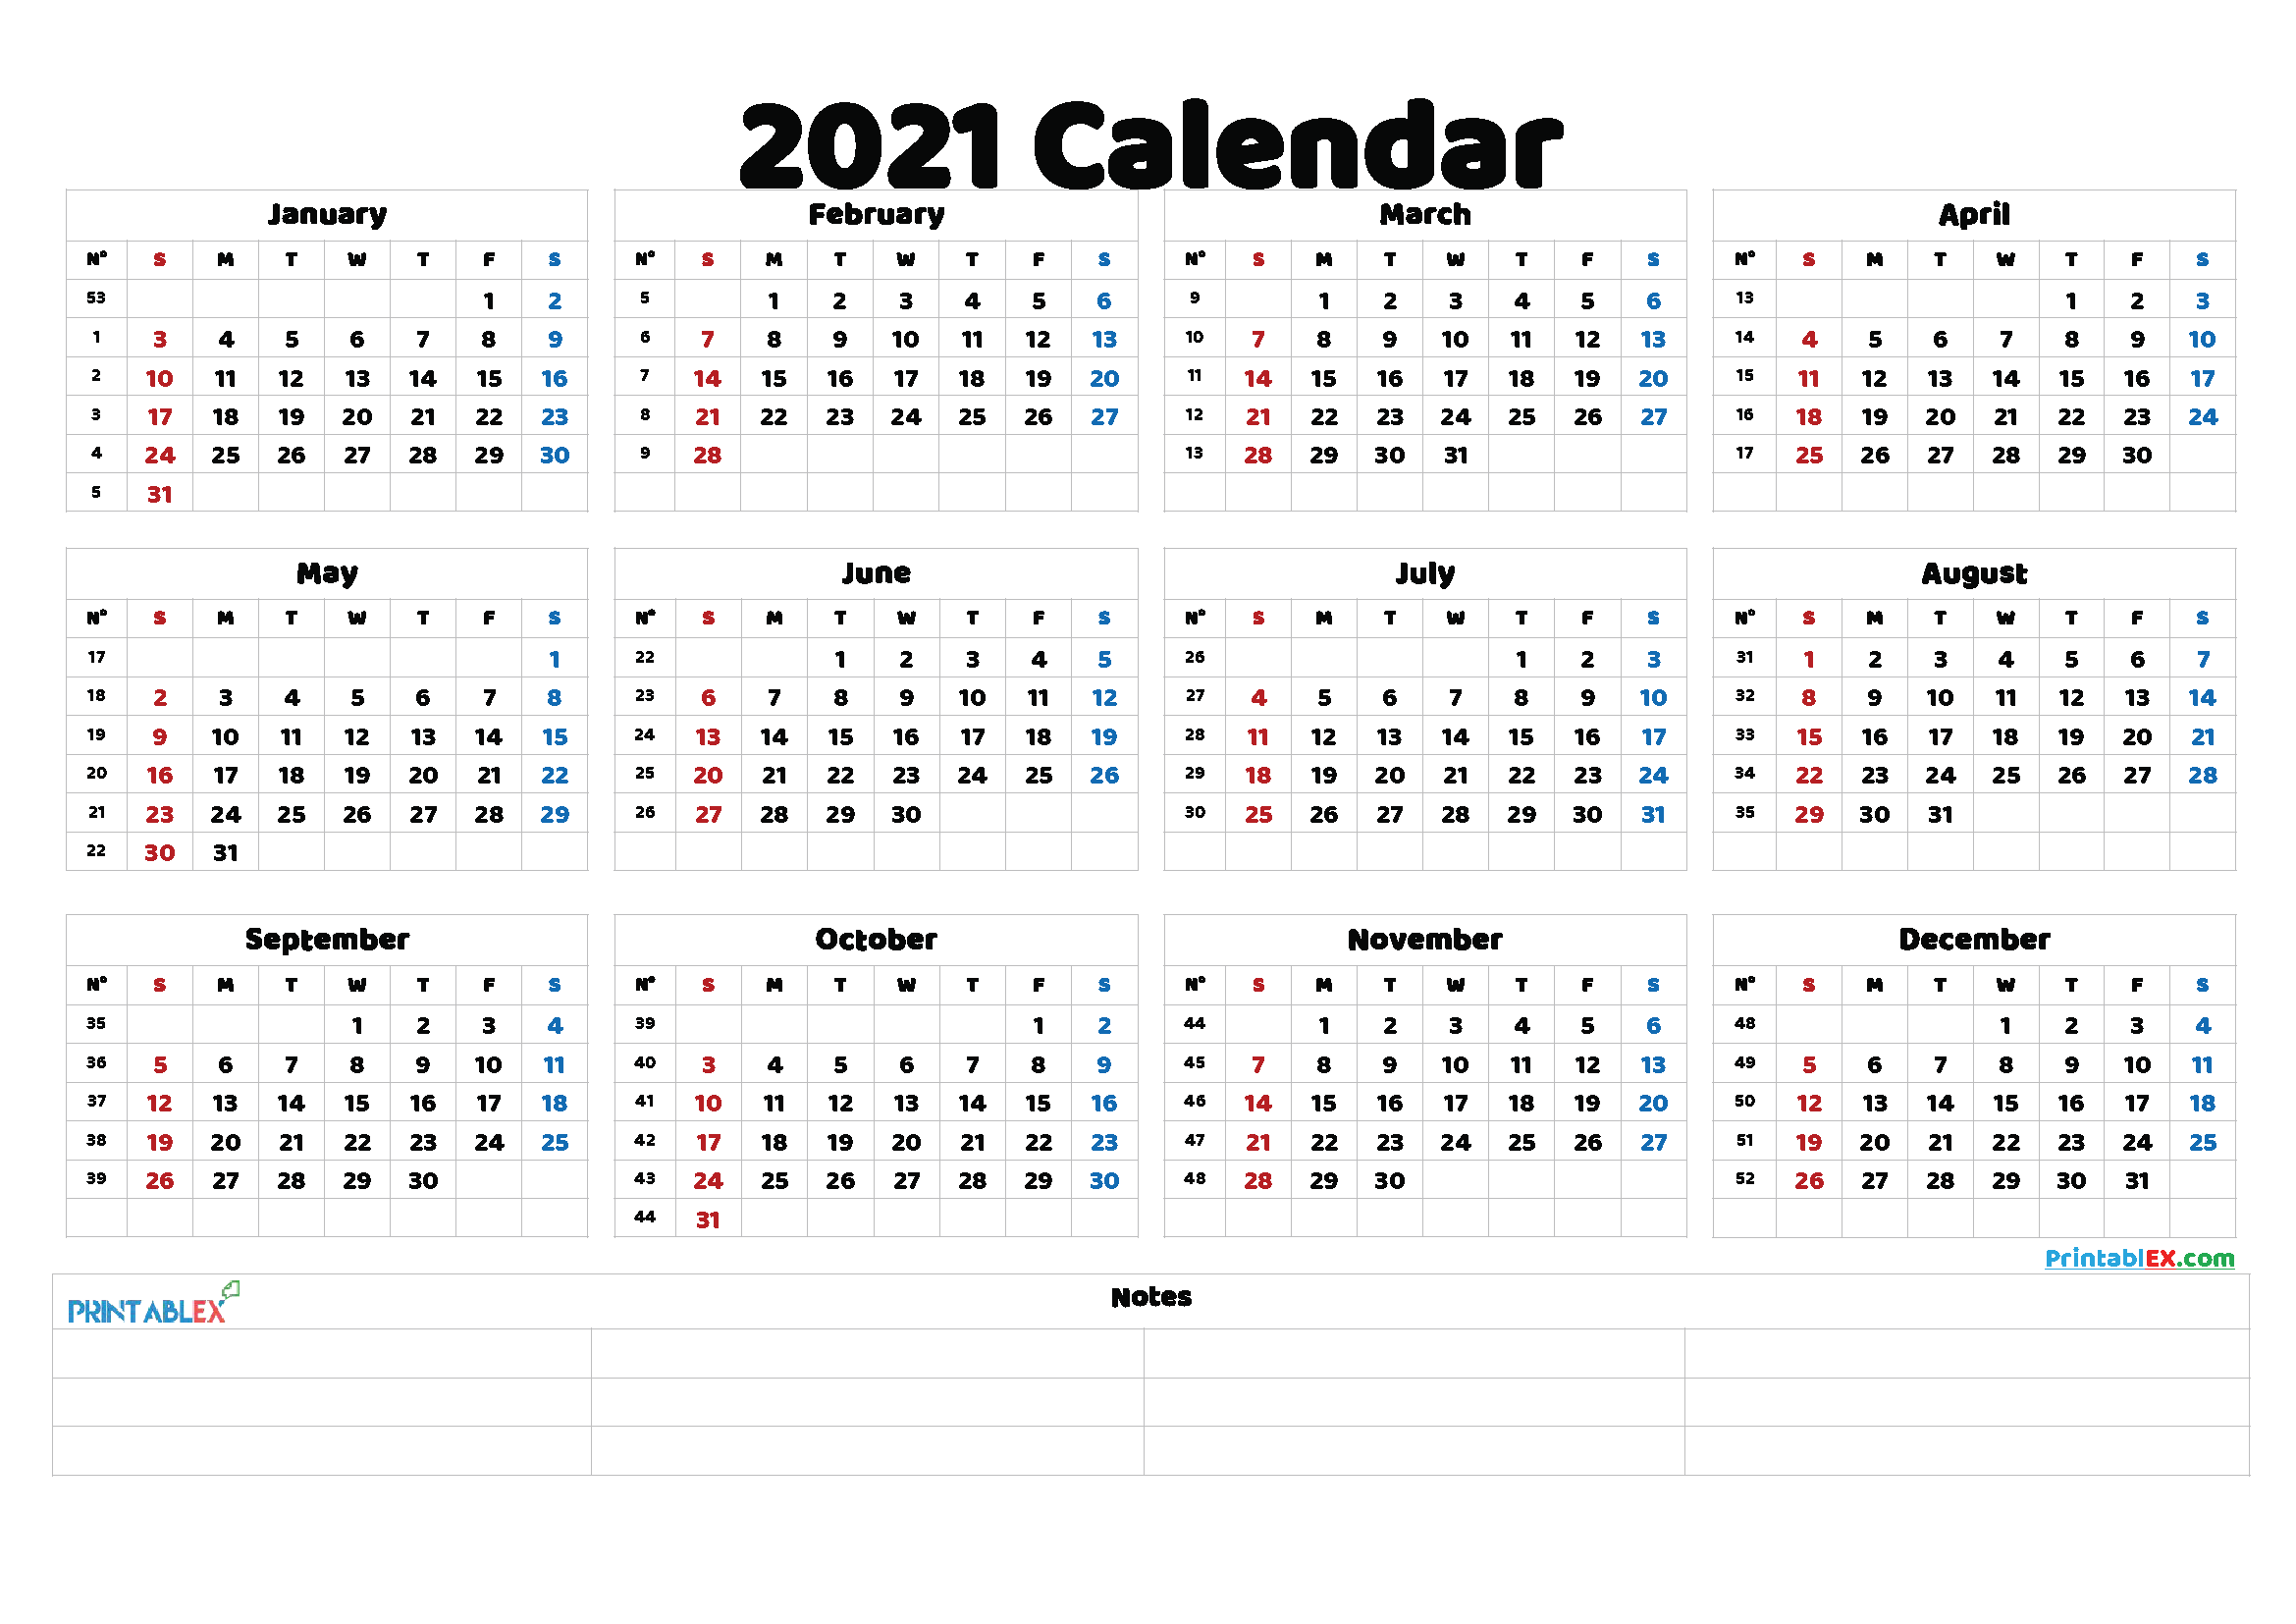 2021 Printable Yearly Calendar with Week Numbers (Font: insom)